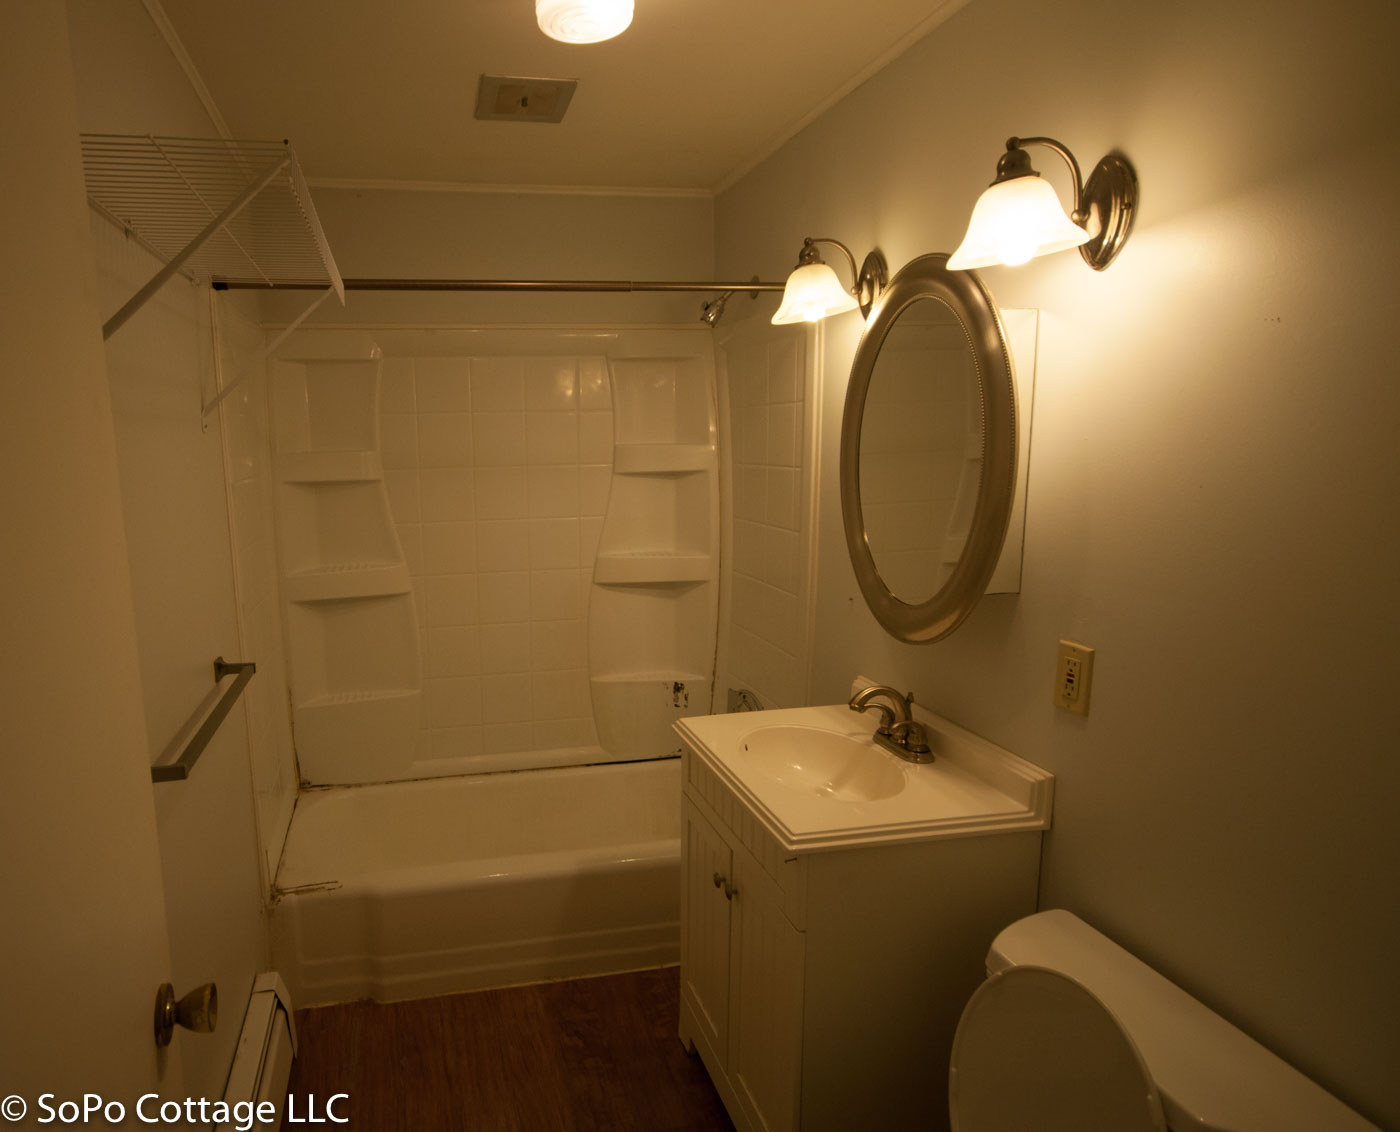 SoPo Cottage Ranch Bathroom Renovation Before And After - How to gut a bathroom